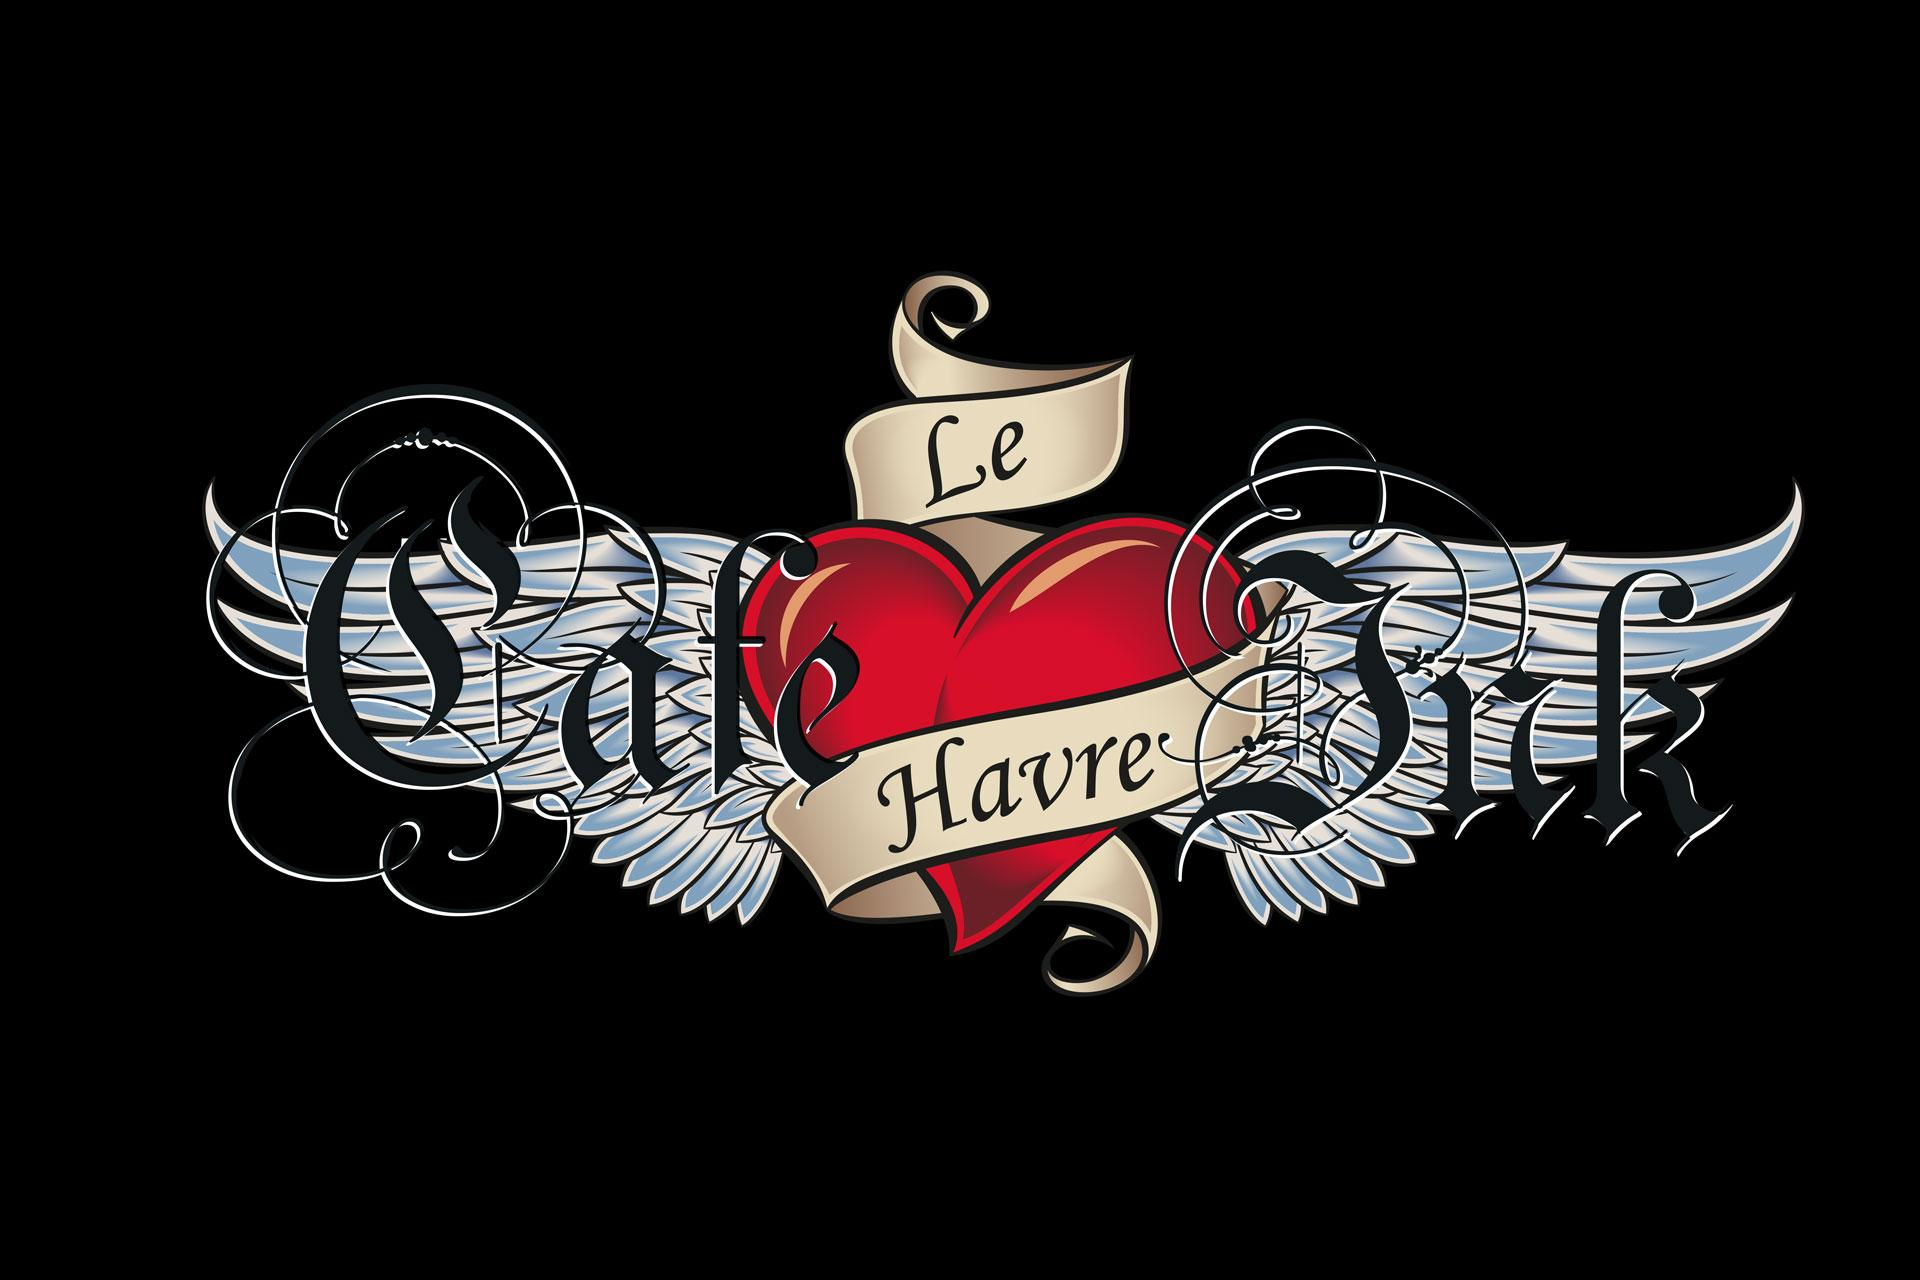 Tatotoo, Piercing, Shop & Exposition - 76600 Le Havre